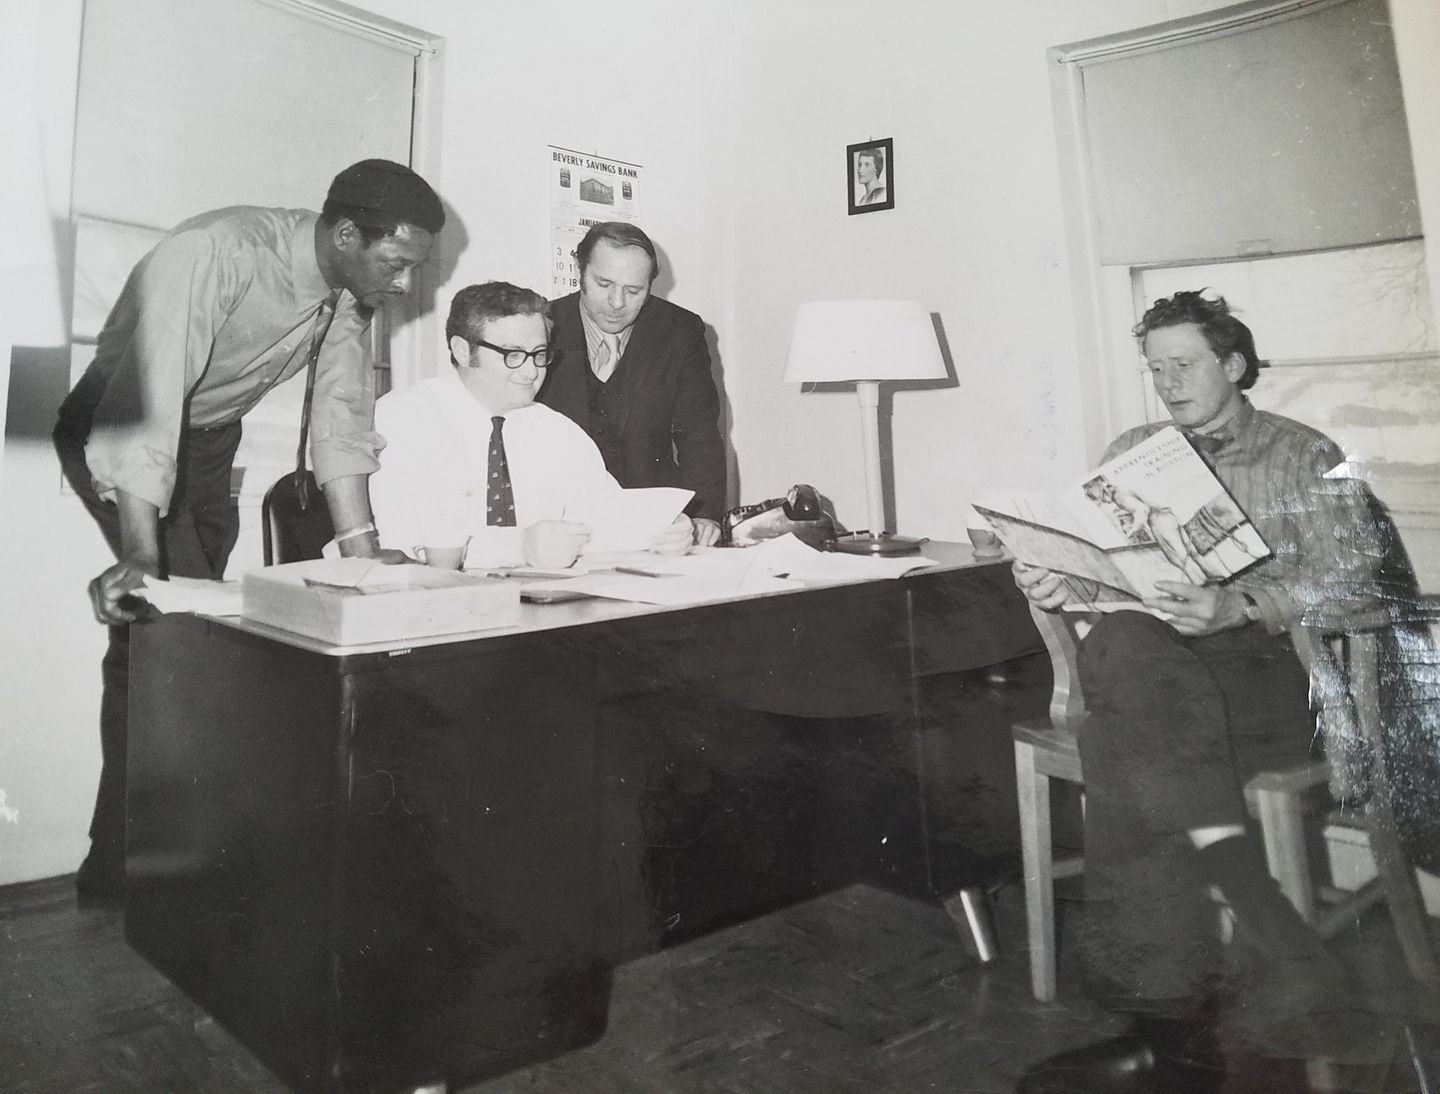 Bert Fliegel (seated at desk), director of Columbia Point Health Center, and his co-workers advocated for better health care for residents, circa 1972.